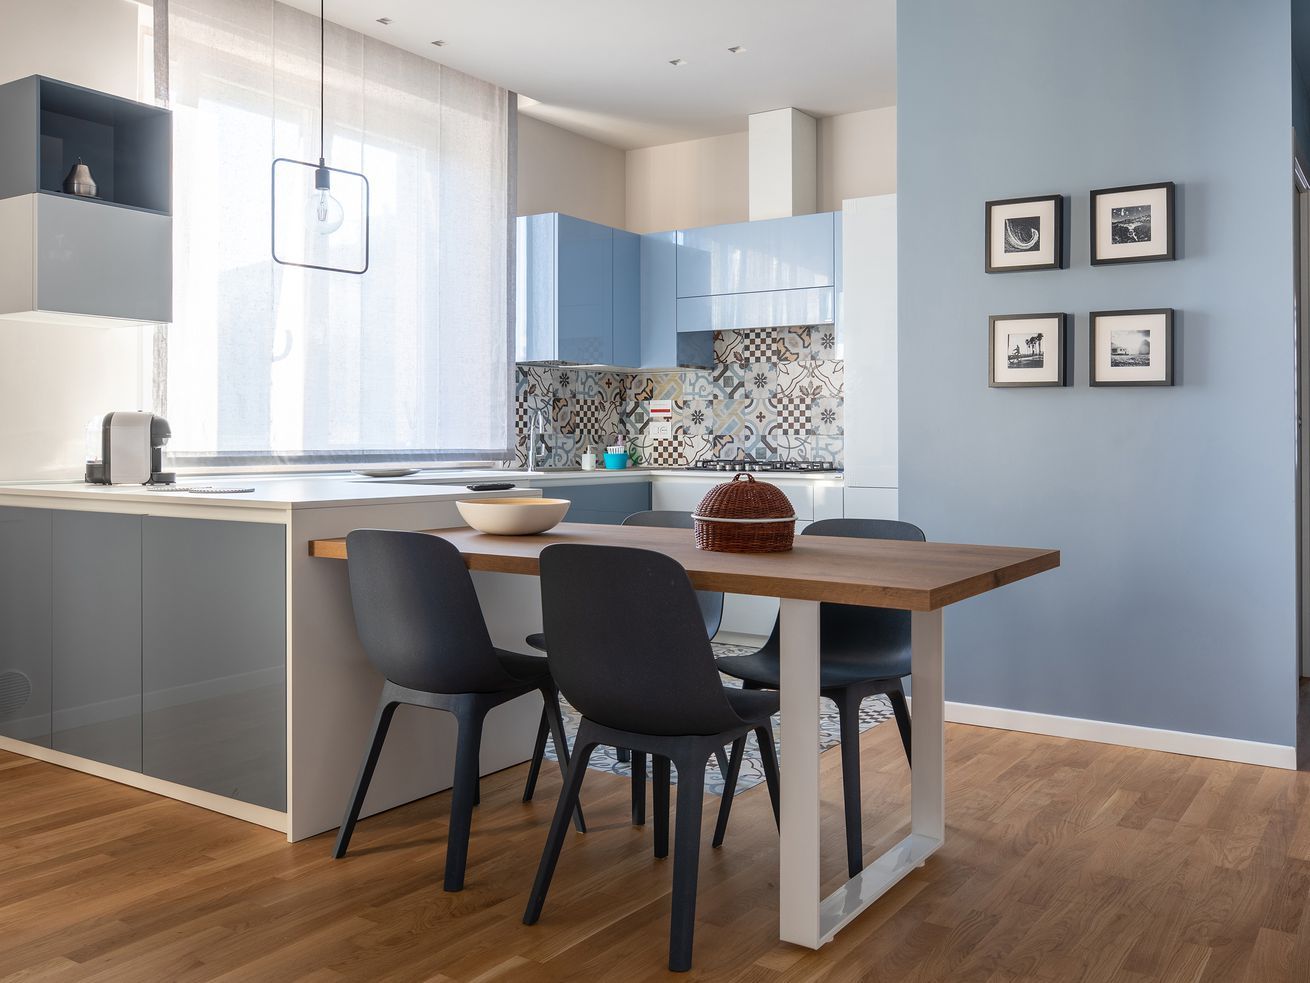 Blue painted kitchen and dining area in a condo.